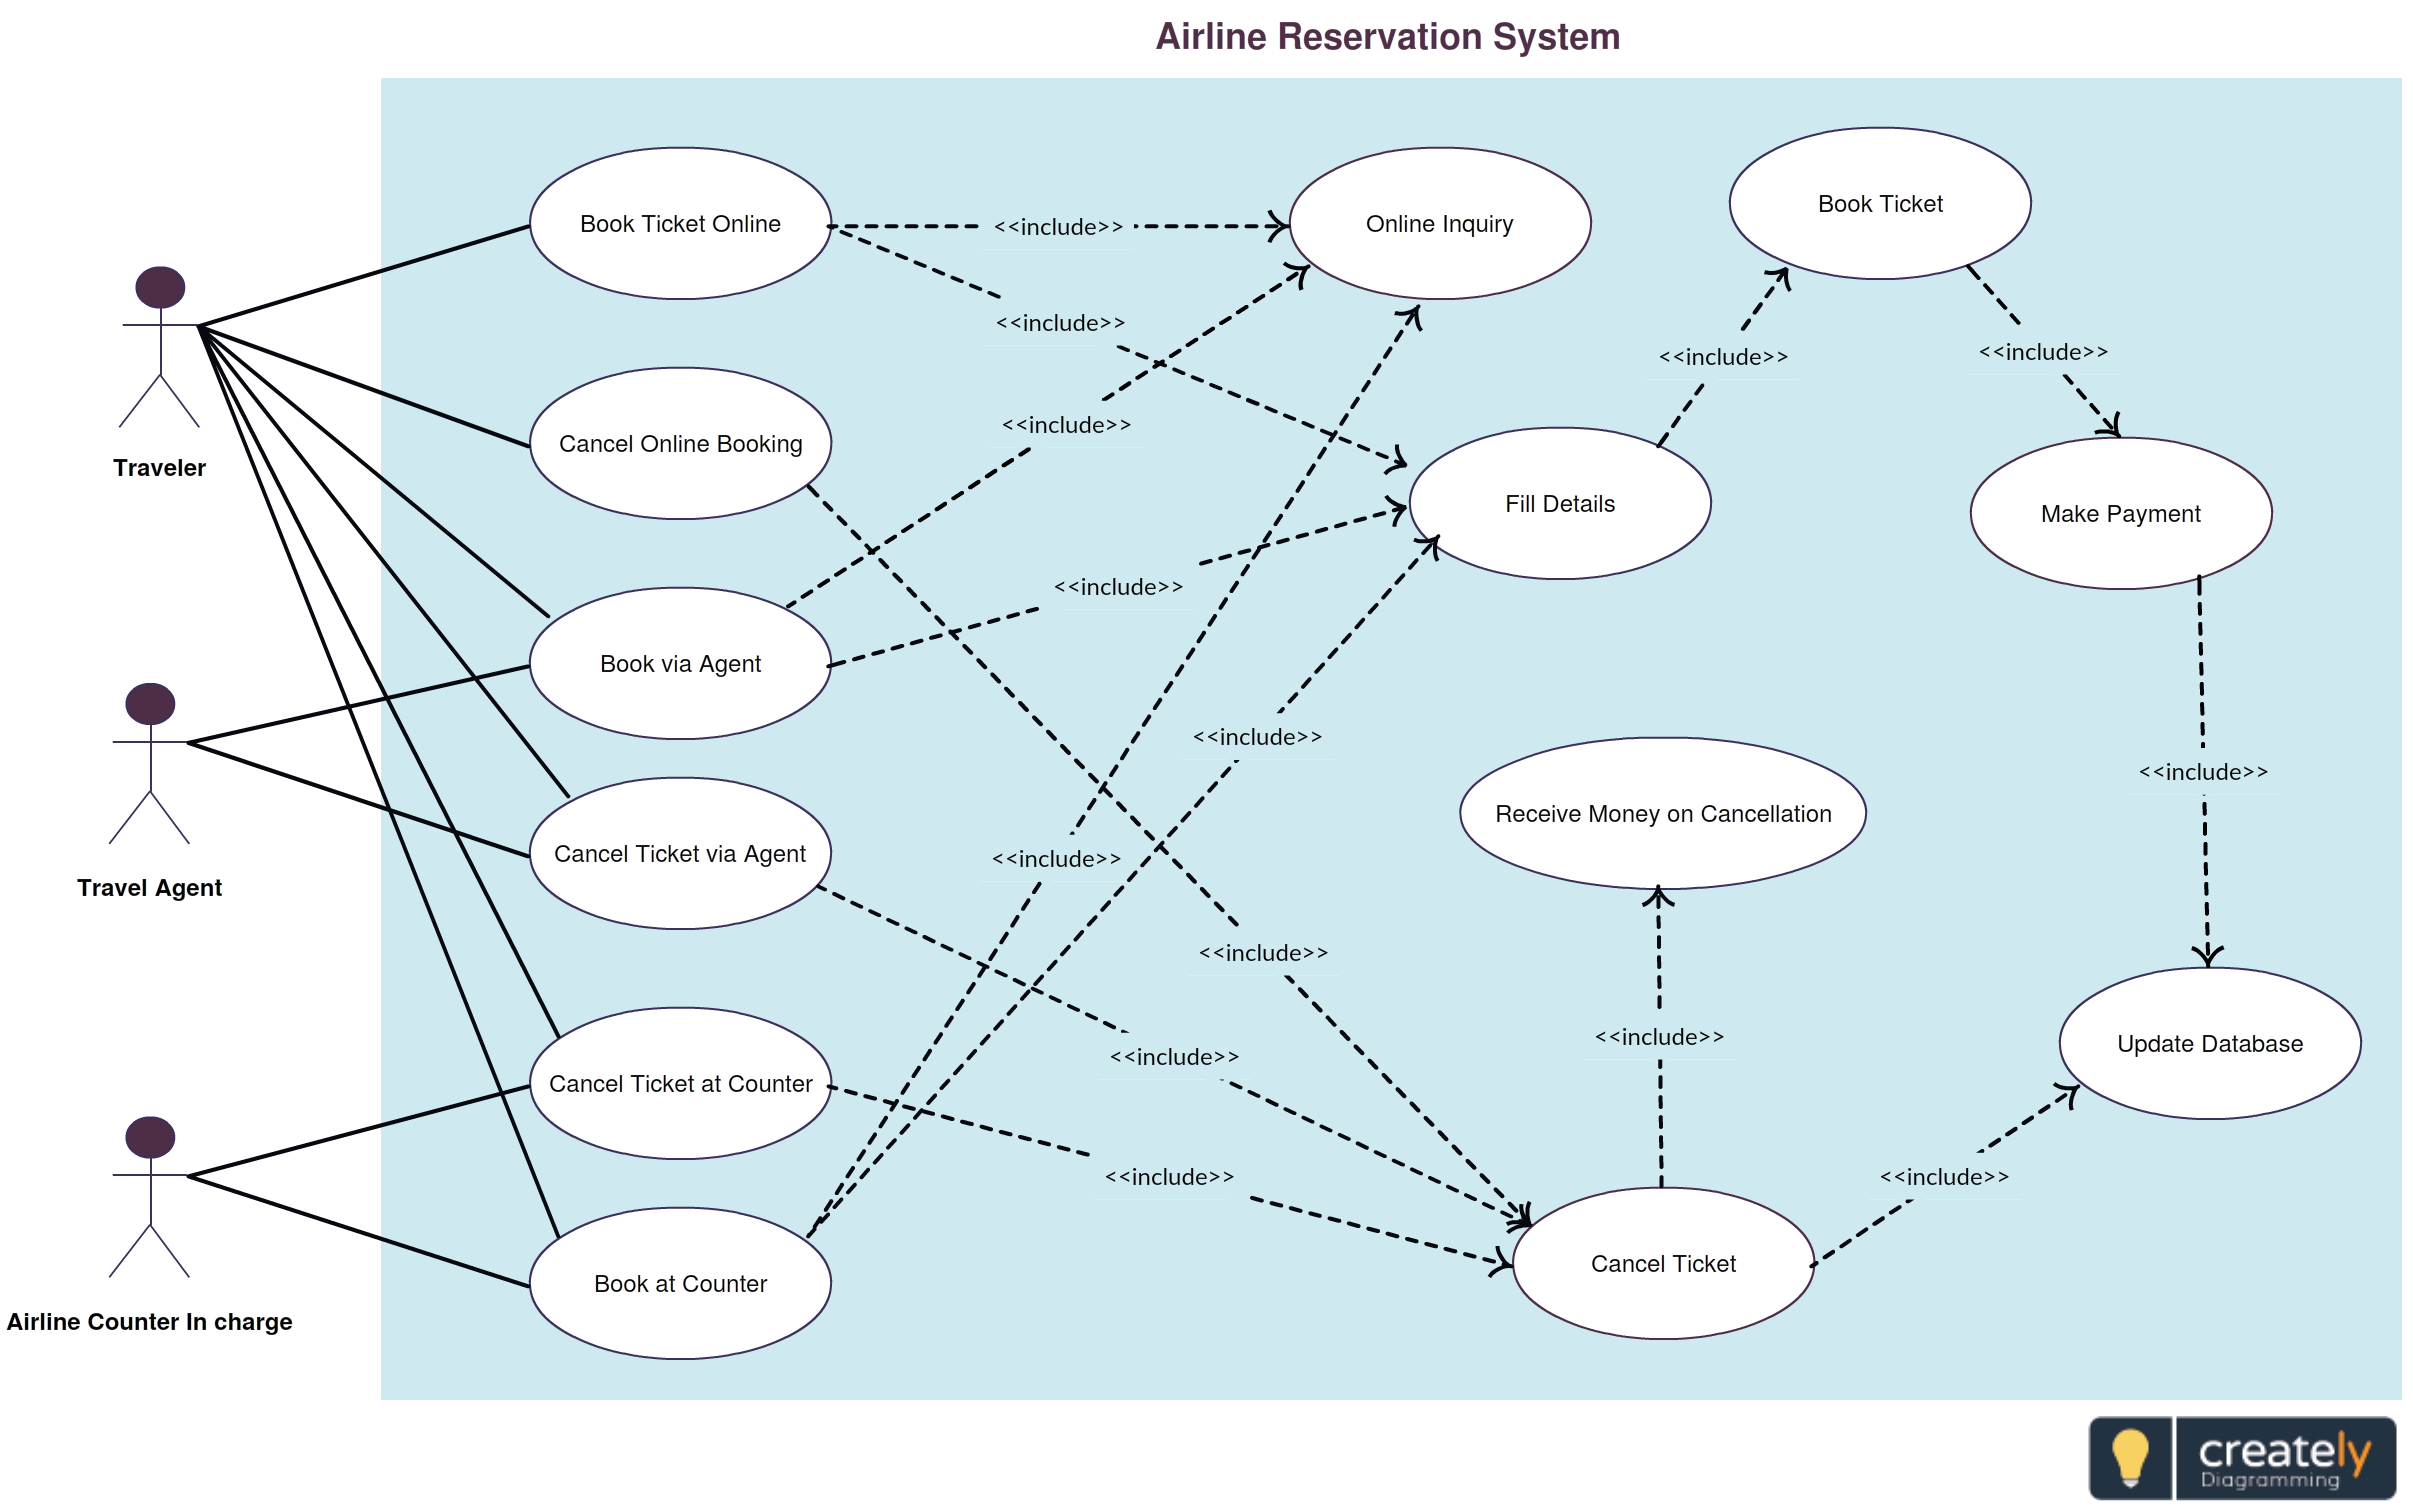 Use Case Template For An Airline Reservation System Traveler Travel Agent And The Airline Counter Handler Are The Actor Use Case Diagram Uml Diagram Use Case